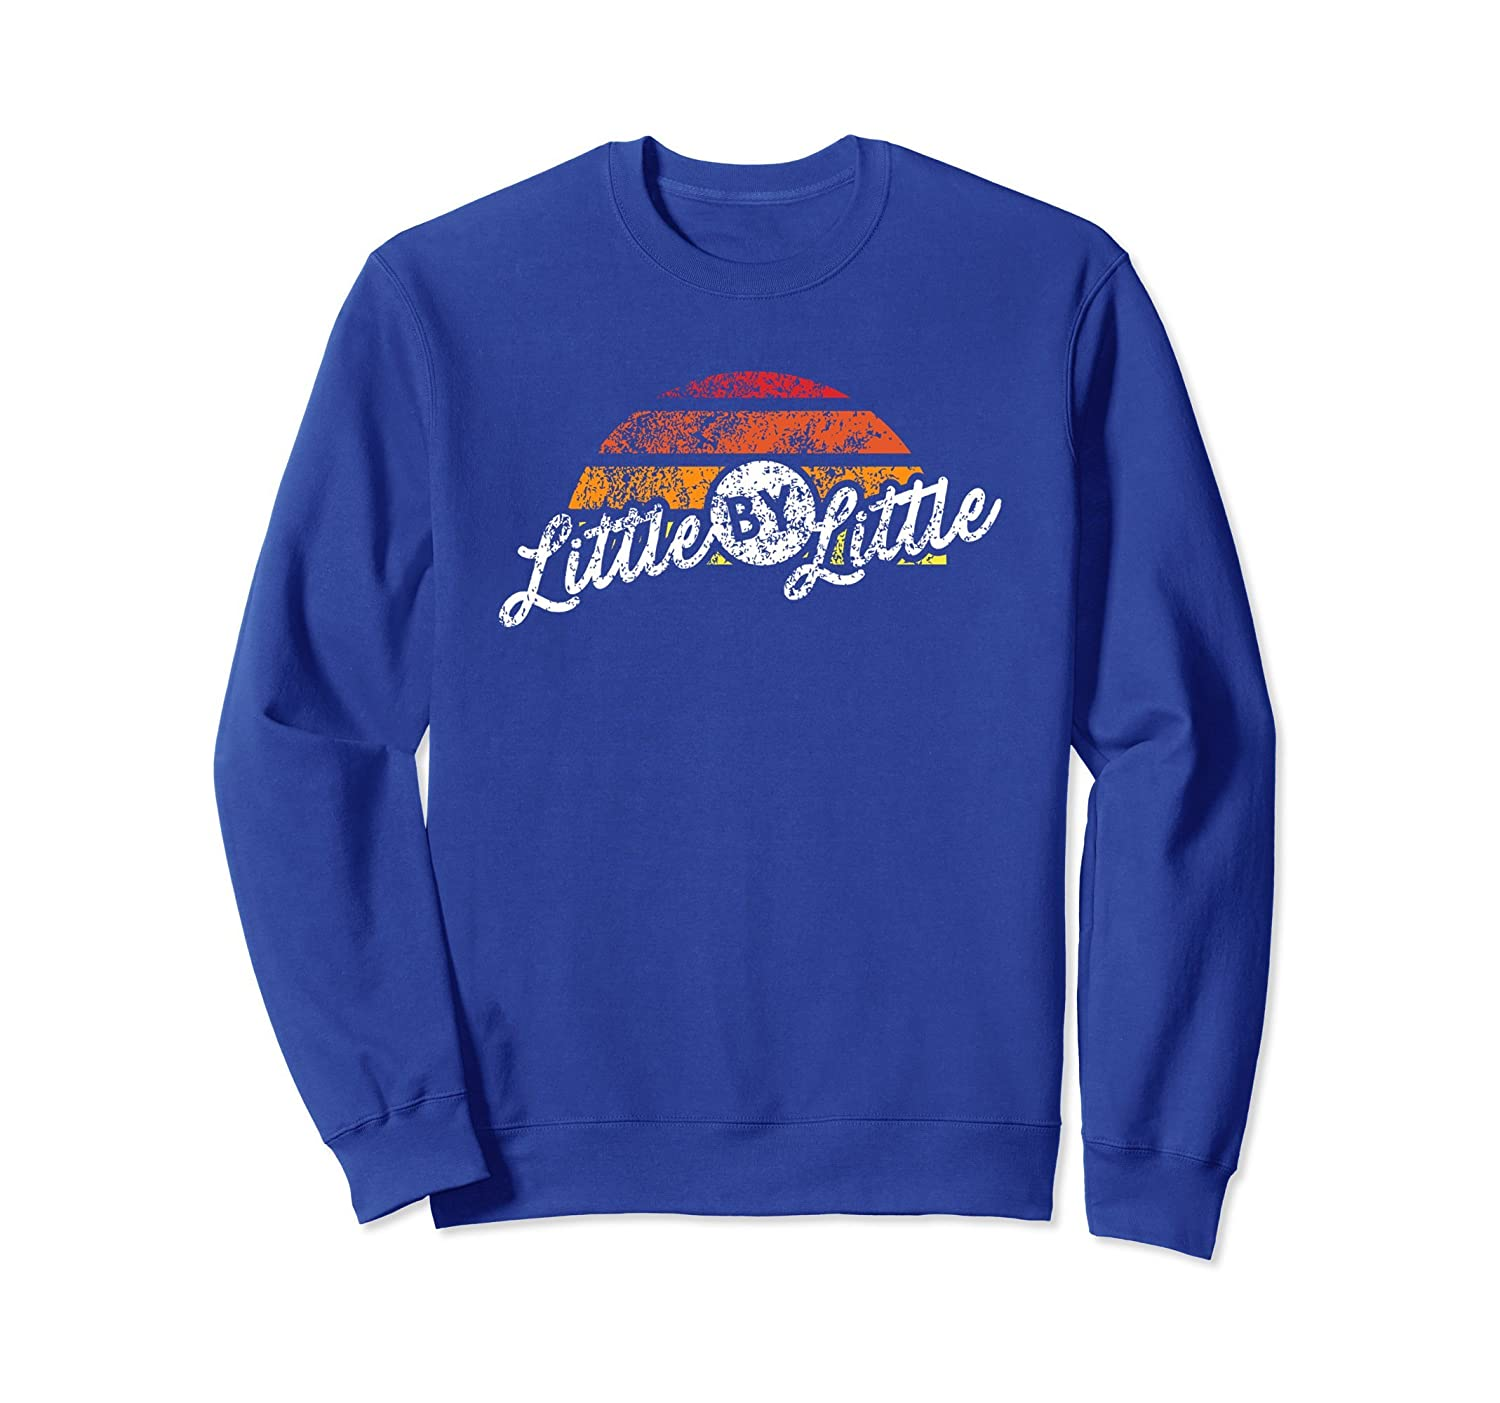 Hannah Hart Little by Little Sweatshirt-Samdetee